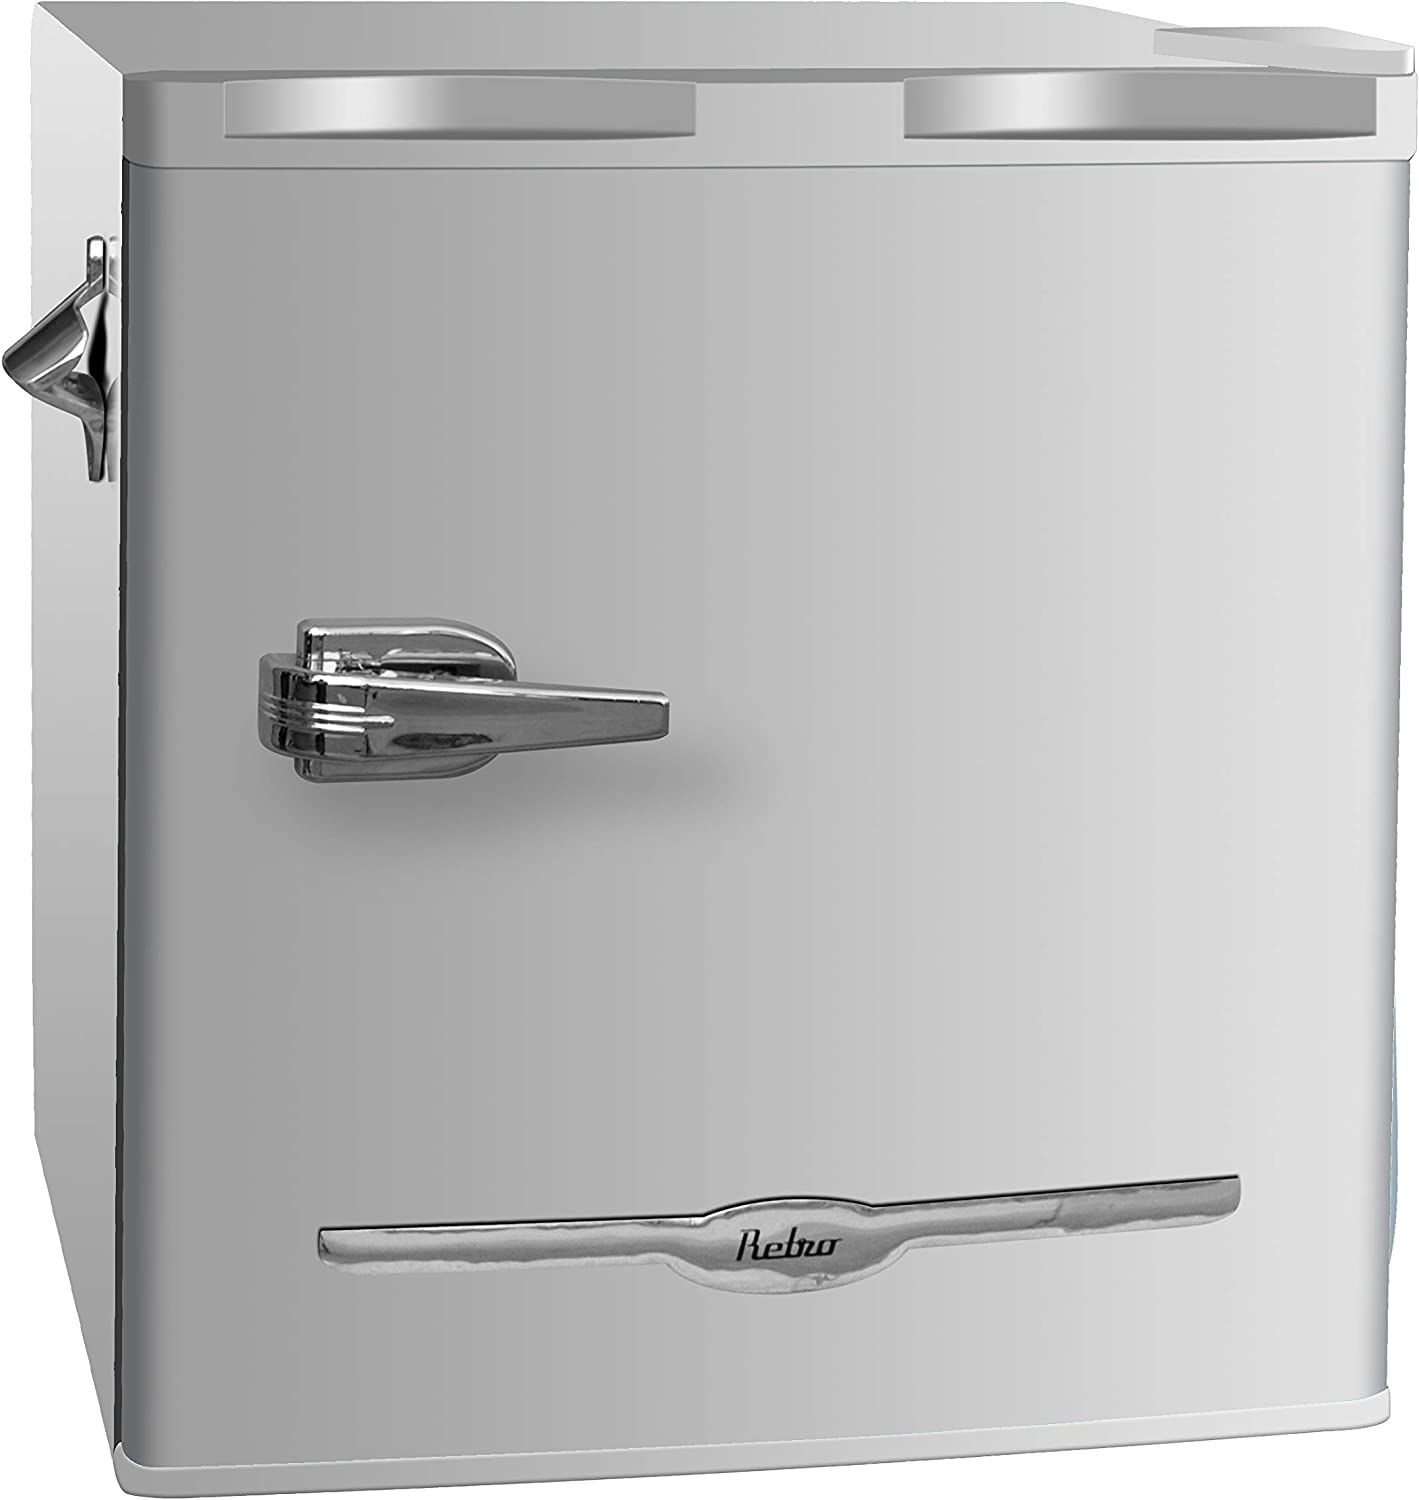 Frigidaire EFR176-MOONBM 1.6 cu ft Moonbeam Retro Fridge with Side Bottle Opener. for The Office, Dorm Room or Cabin